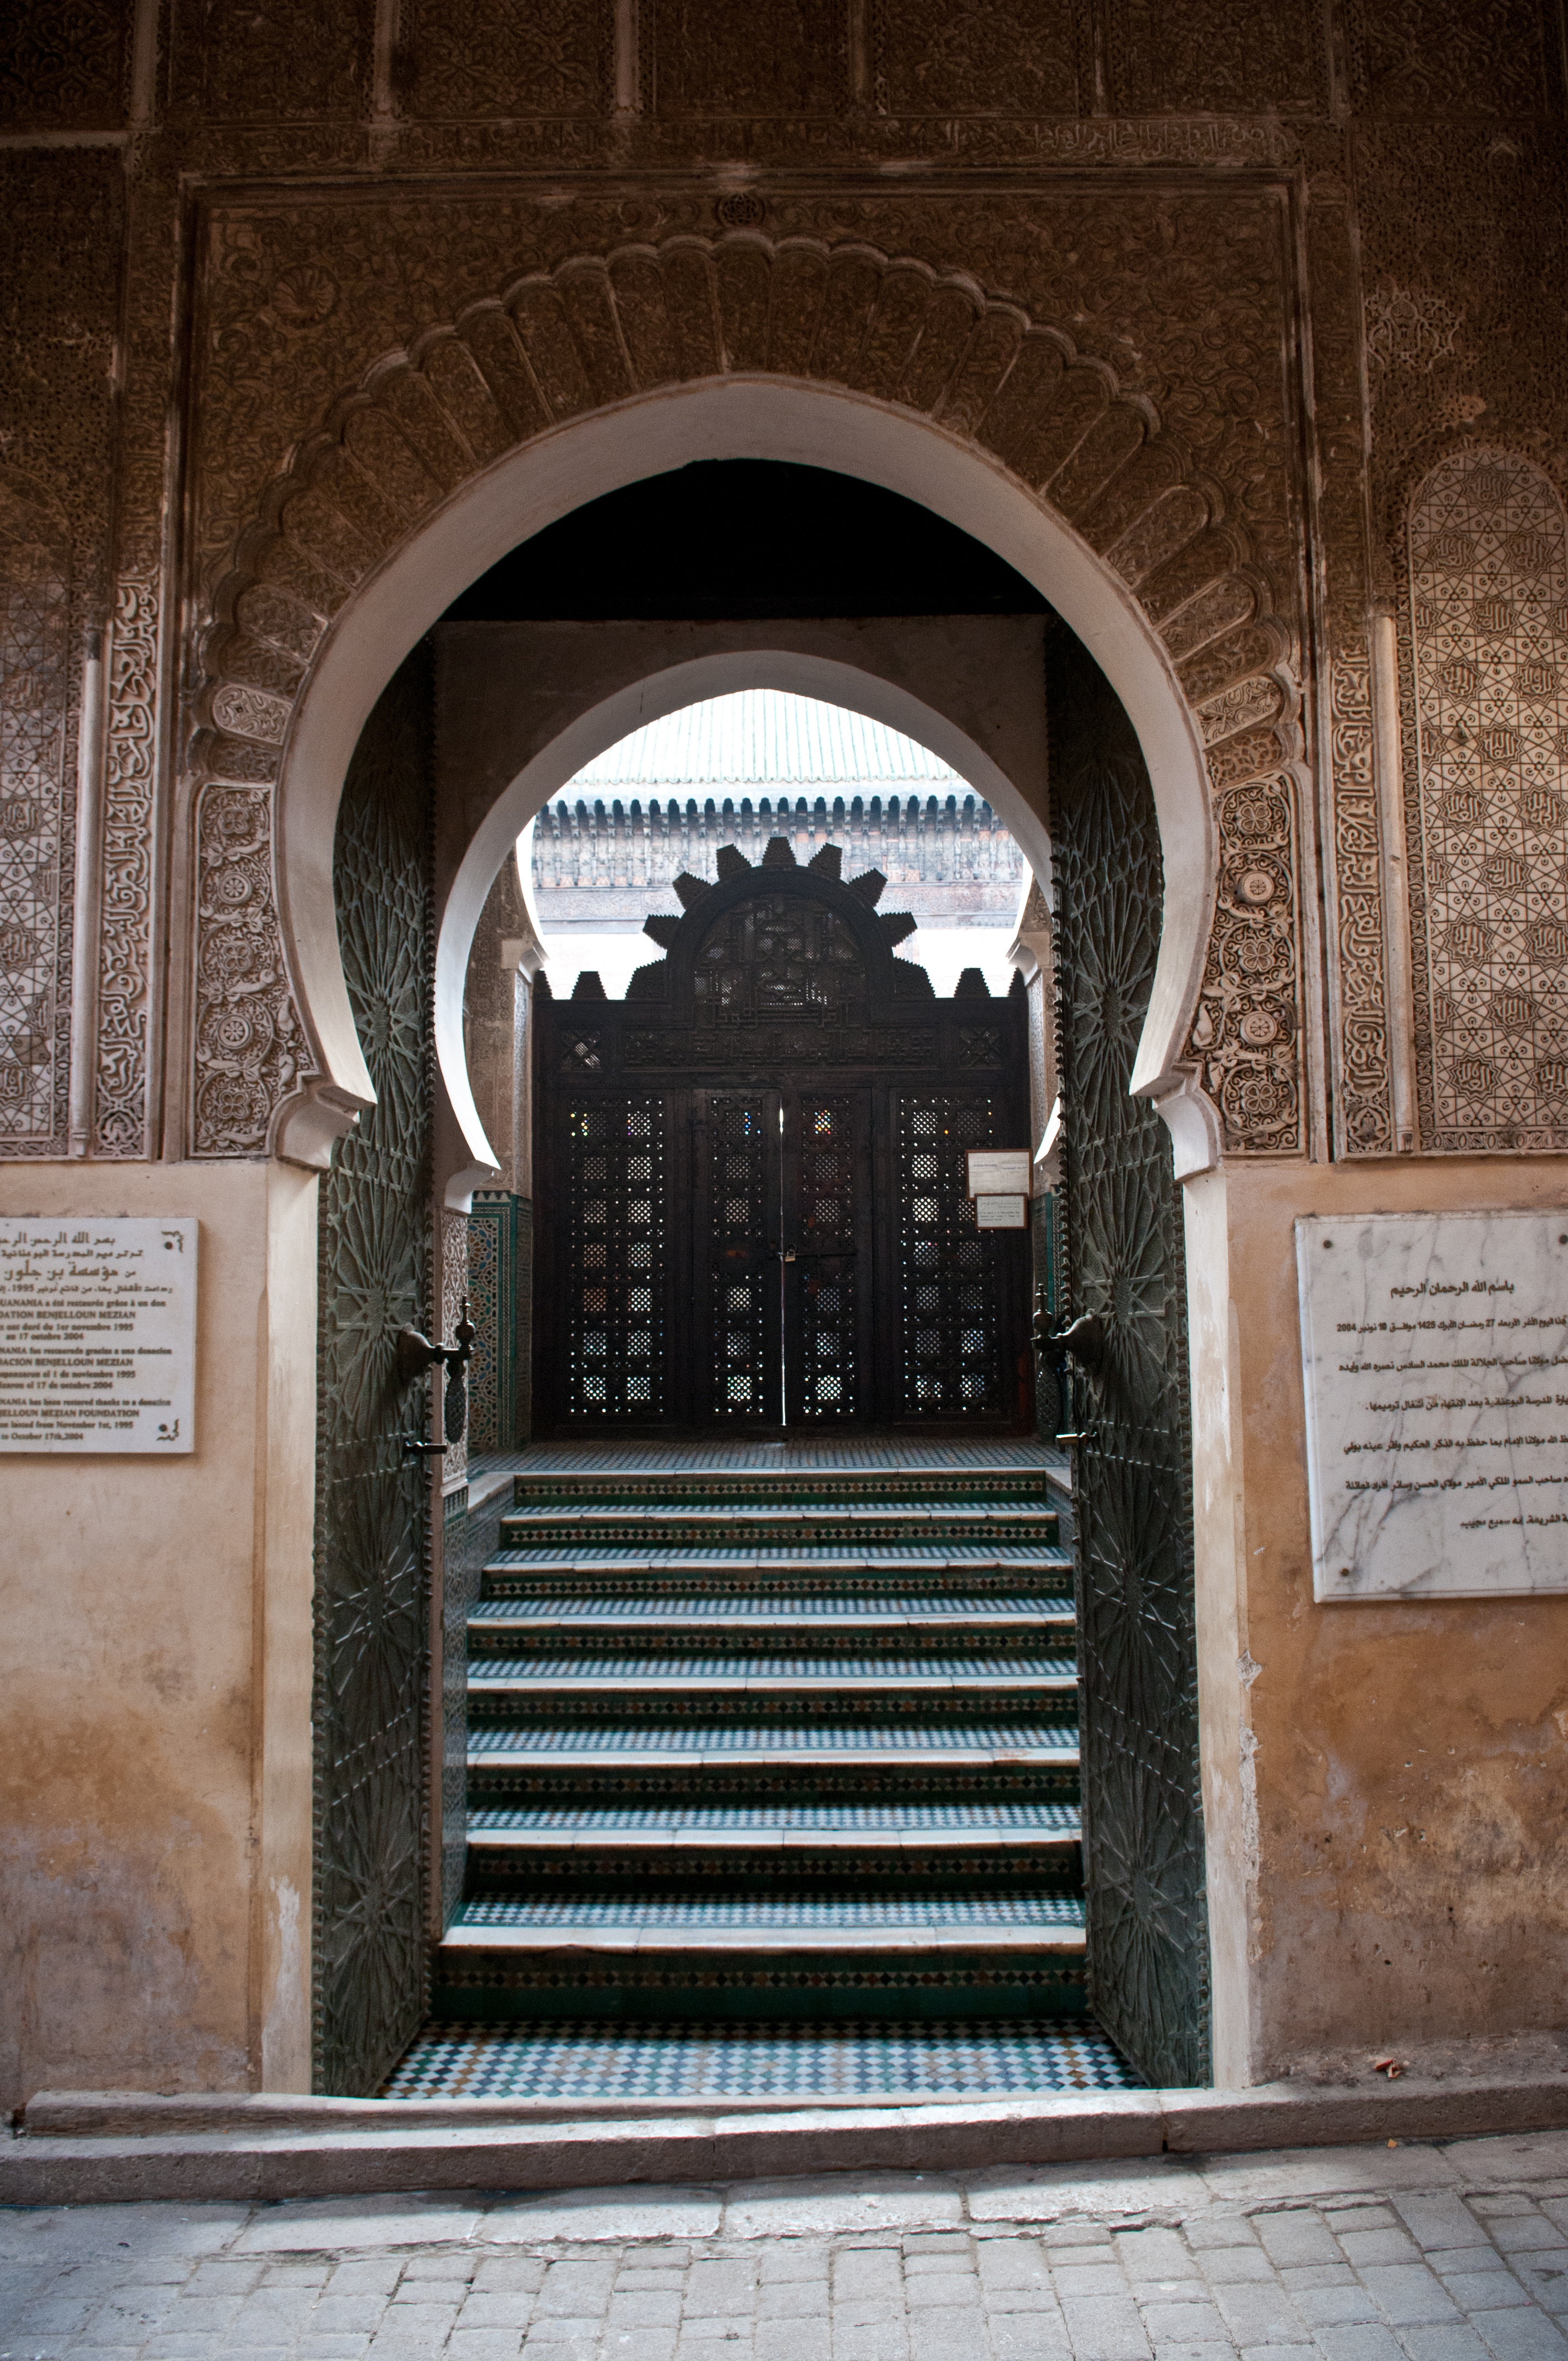 File:Entrance to a mosque in Fes (5364960238).jpg - Wikimedia Commons